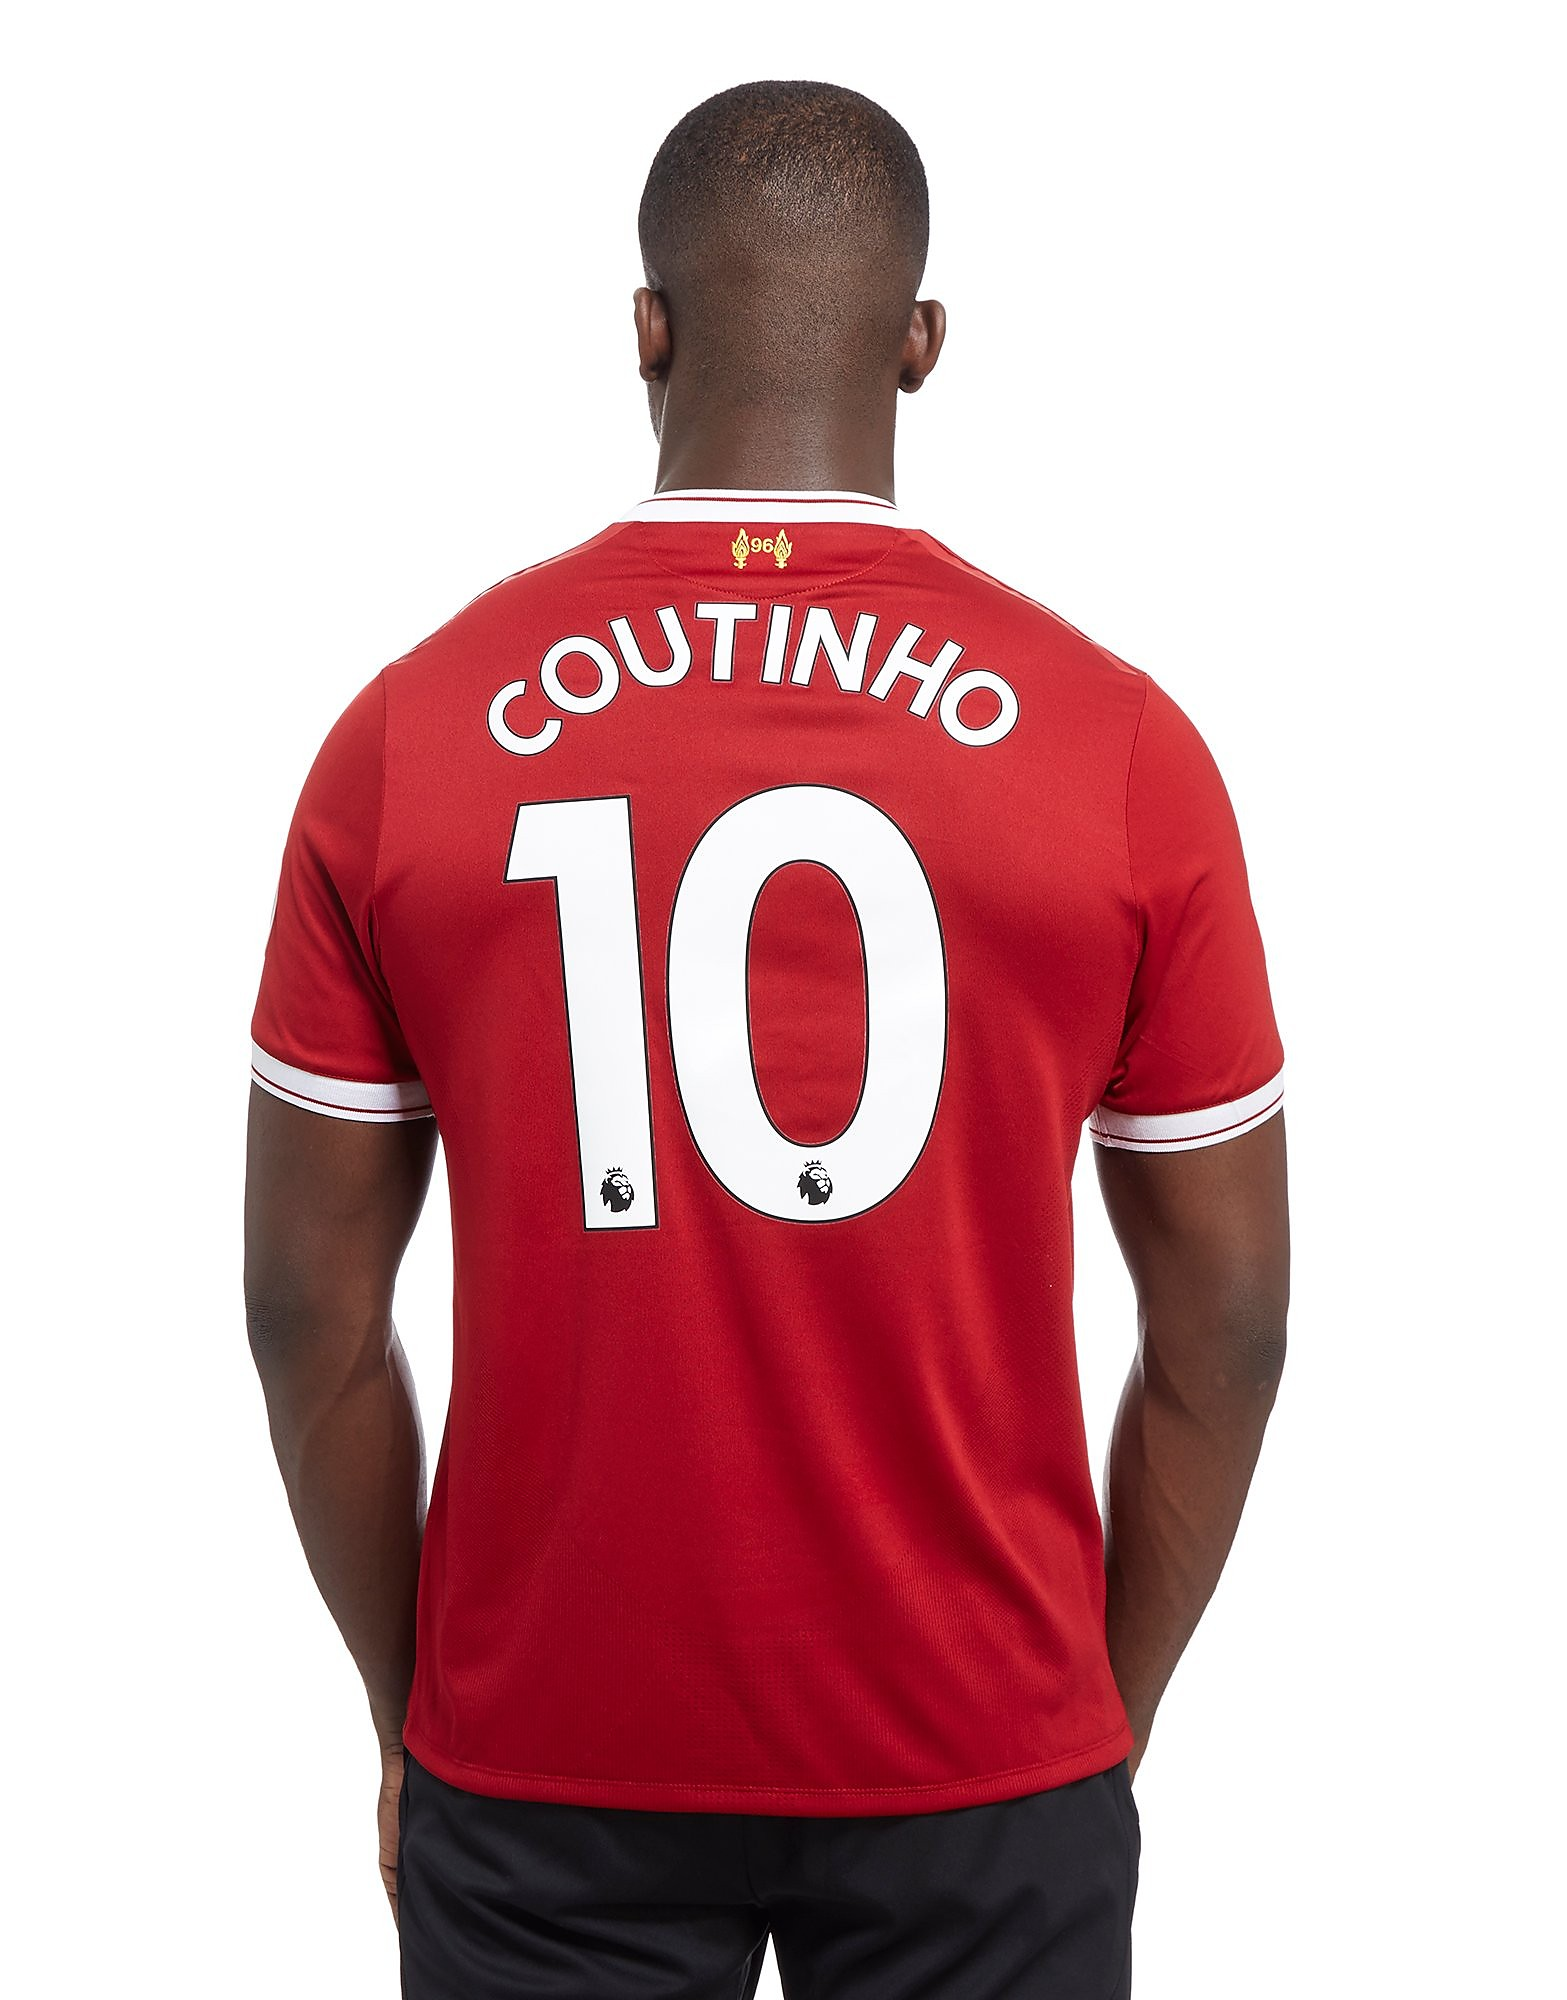 New Balance Liverpool FC Coutinho #10 2017/18 Home Shirt